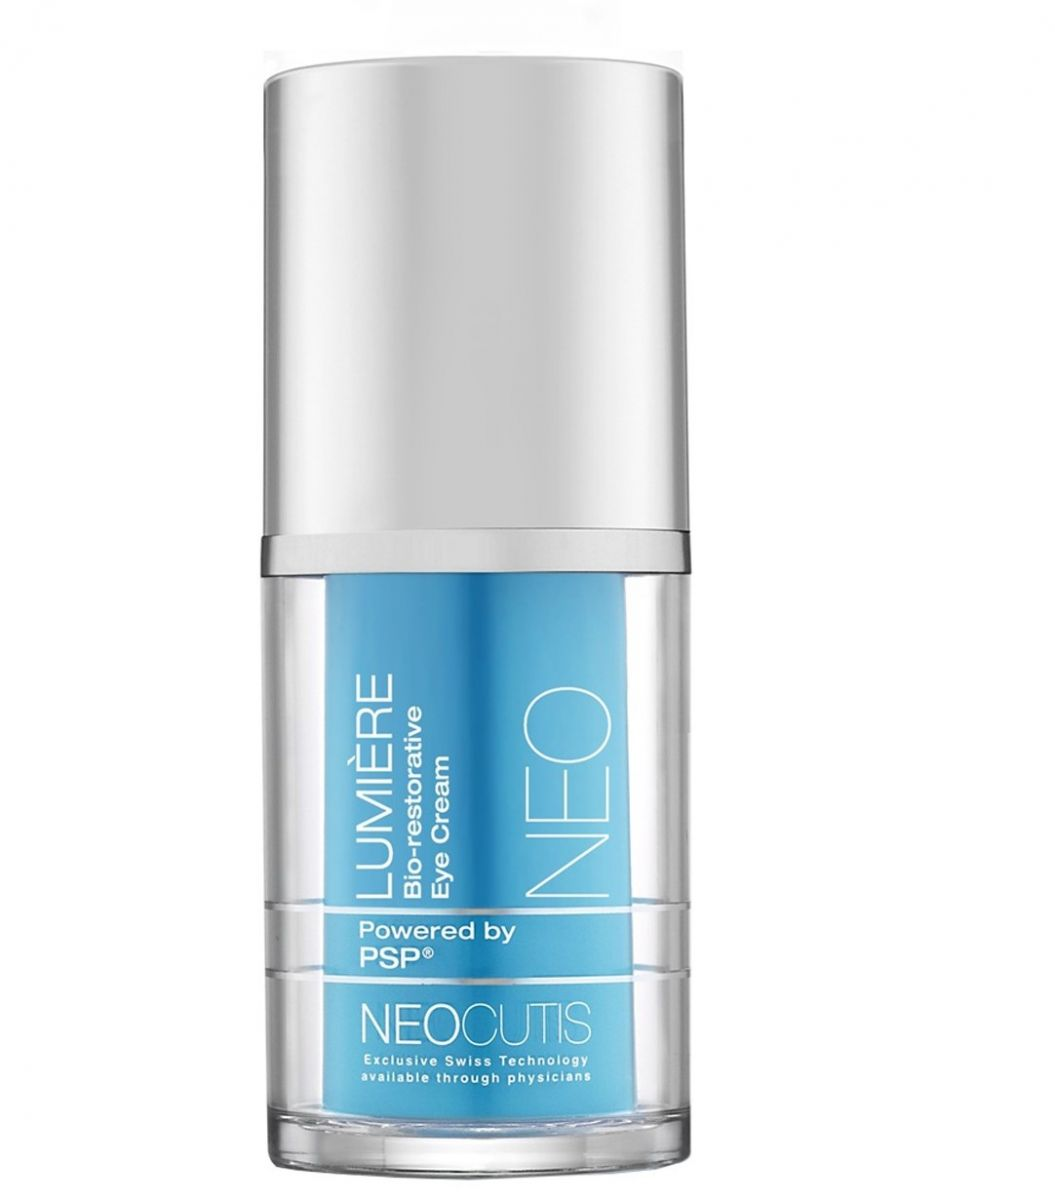 Neocutis Lumiere Bio-restorative Eye Cream with PSP, 51$